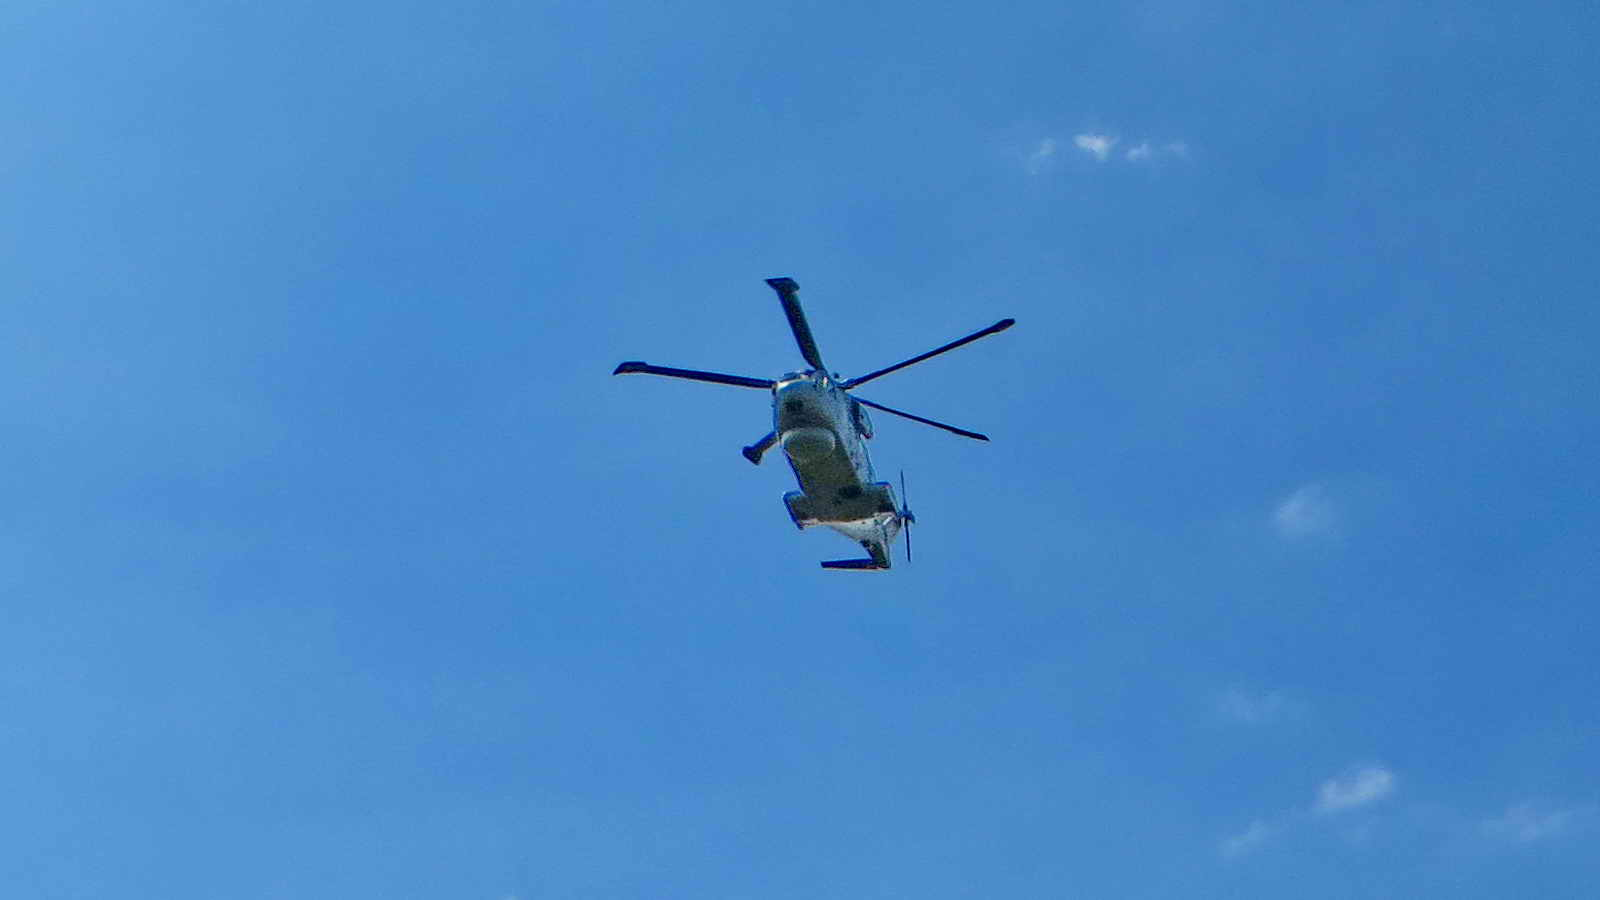 A Westland Merlin helicopter passed overhead as we were returning